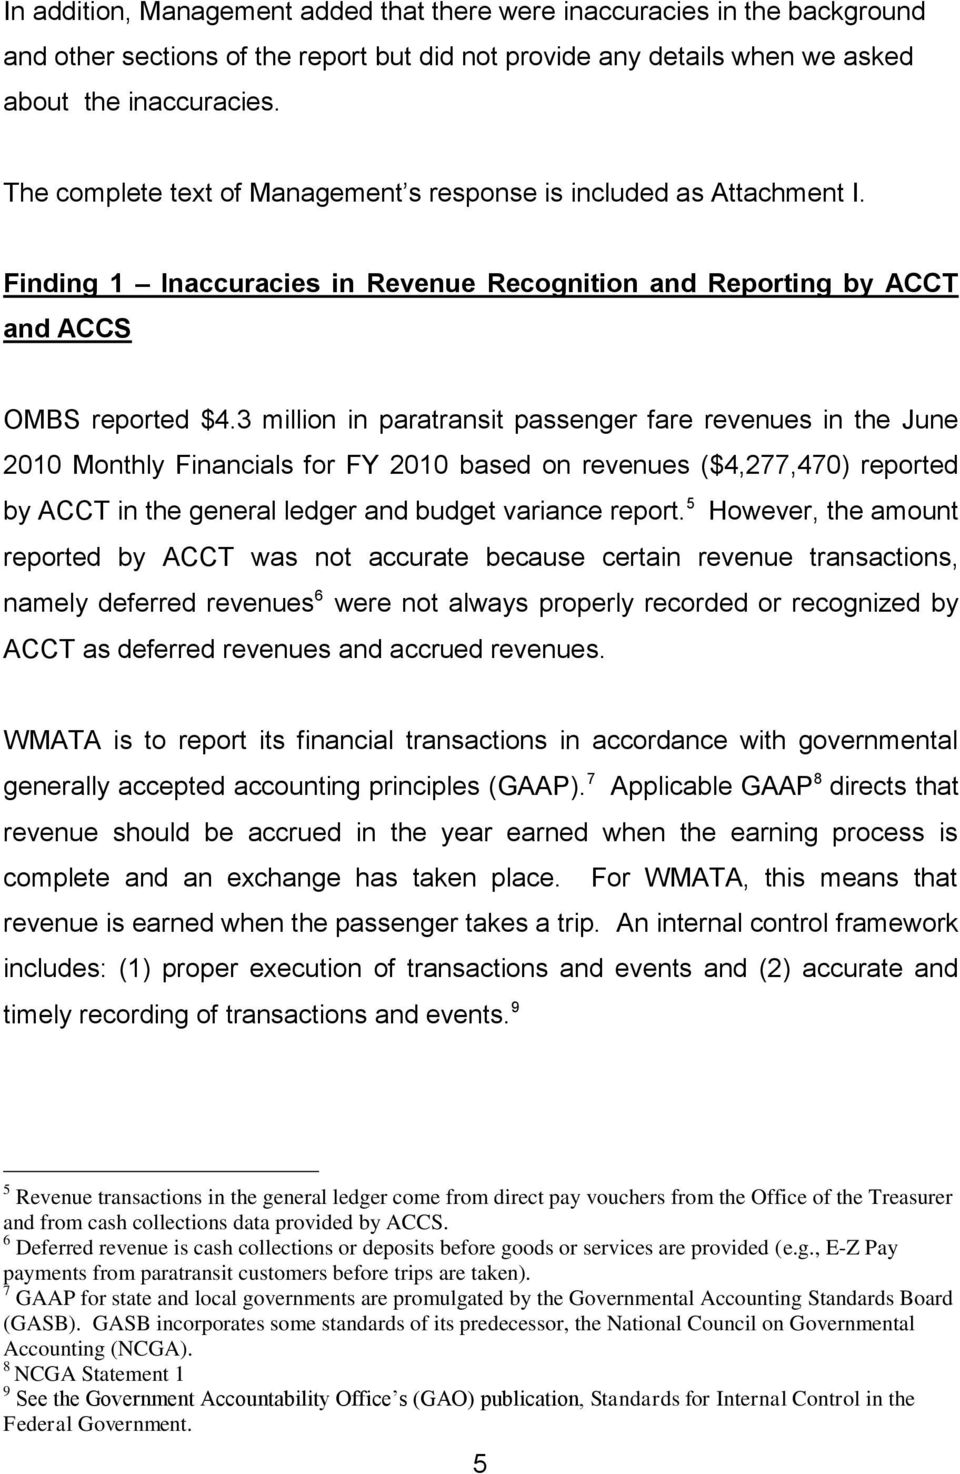 3 million in paratransit passenger fare revenues in the June 2010 Monthly Financials for FY 2010 based on revenues ($4,277,470) reported by ACCT in the general ledger and budget variance report.